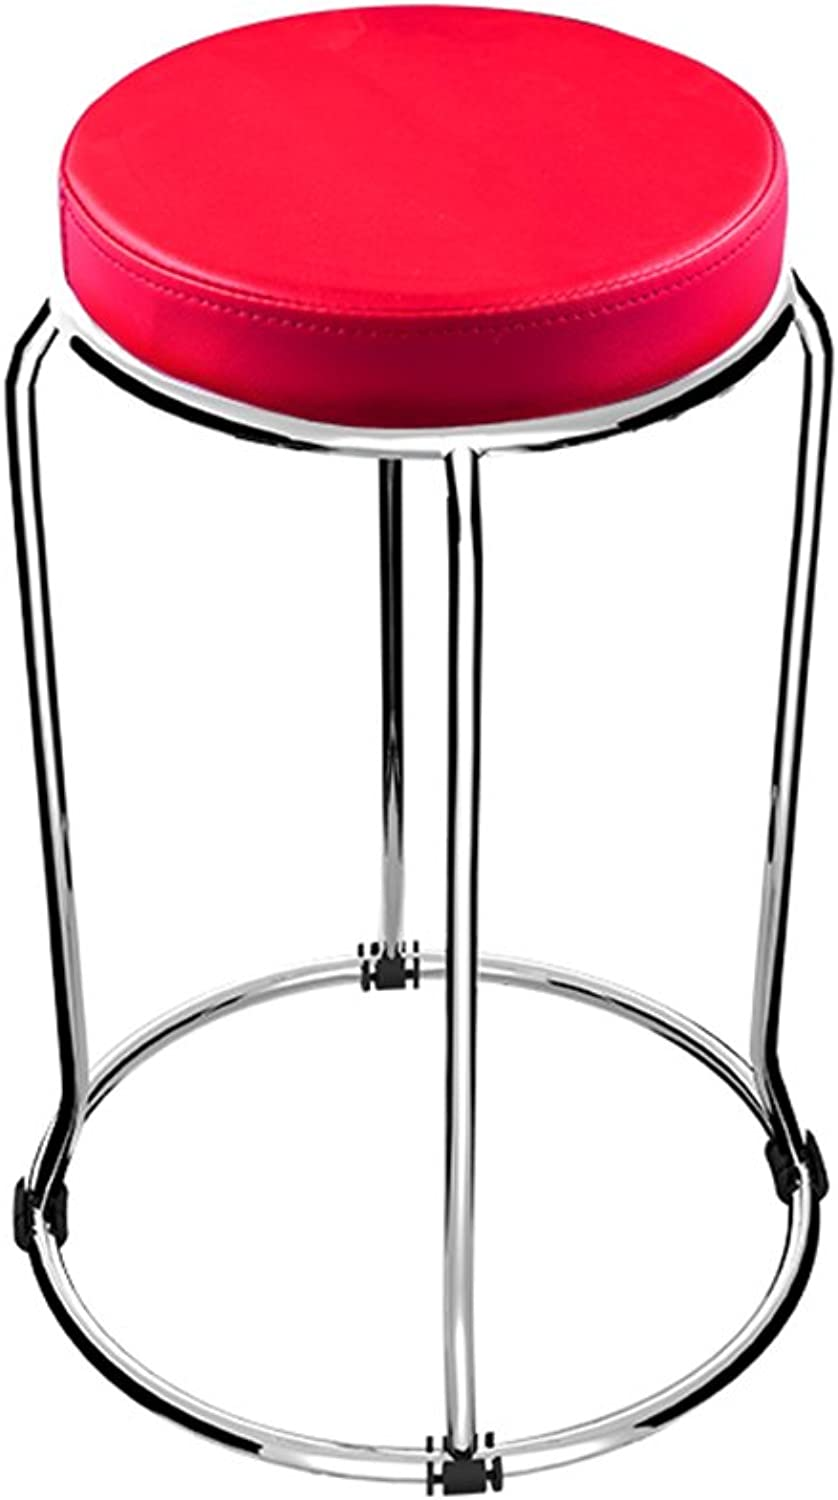 Stool Stainless Steel Round color color Optional 30  30  49cm Solid and Strong Meal Stool Bench (color   4)